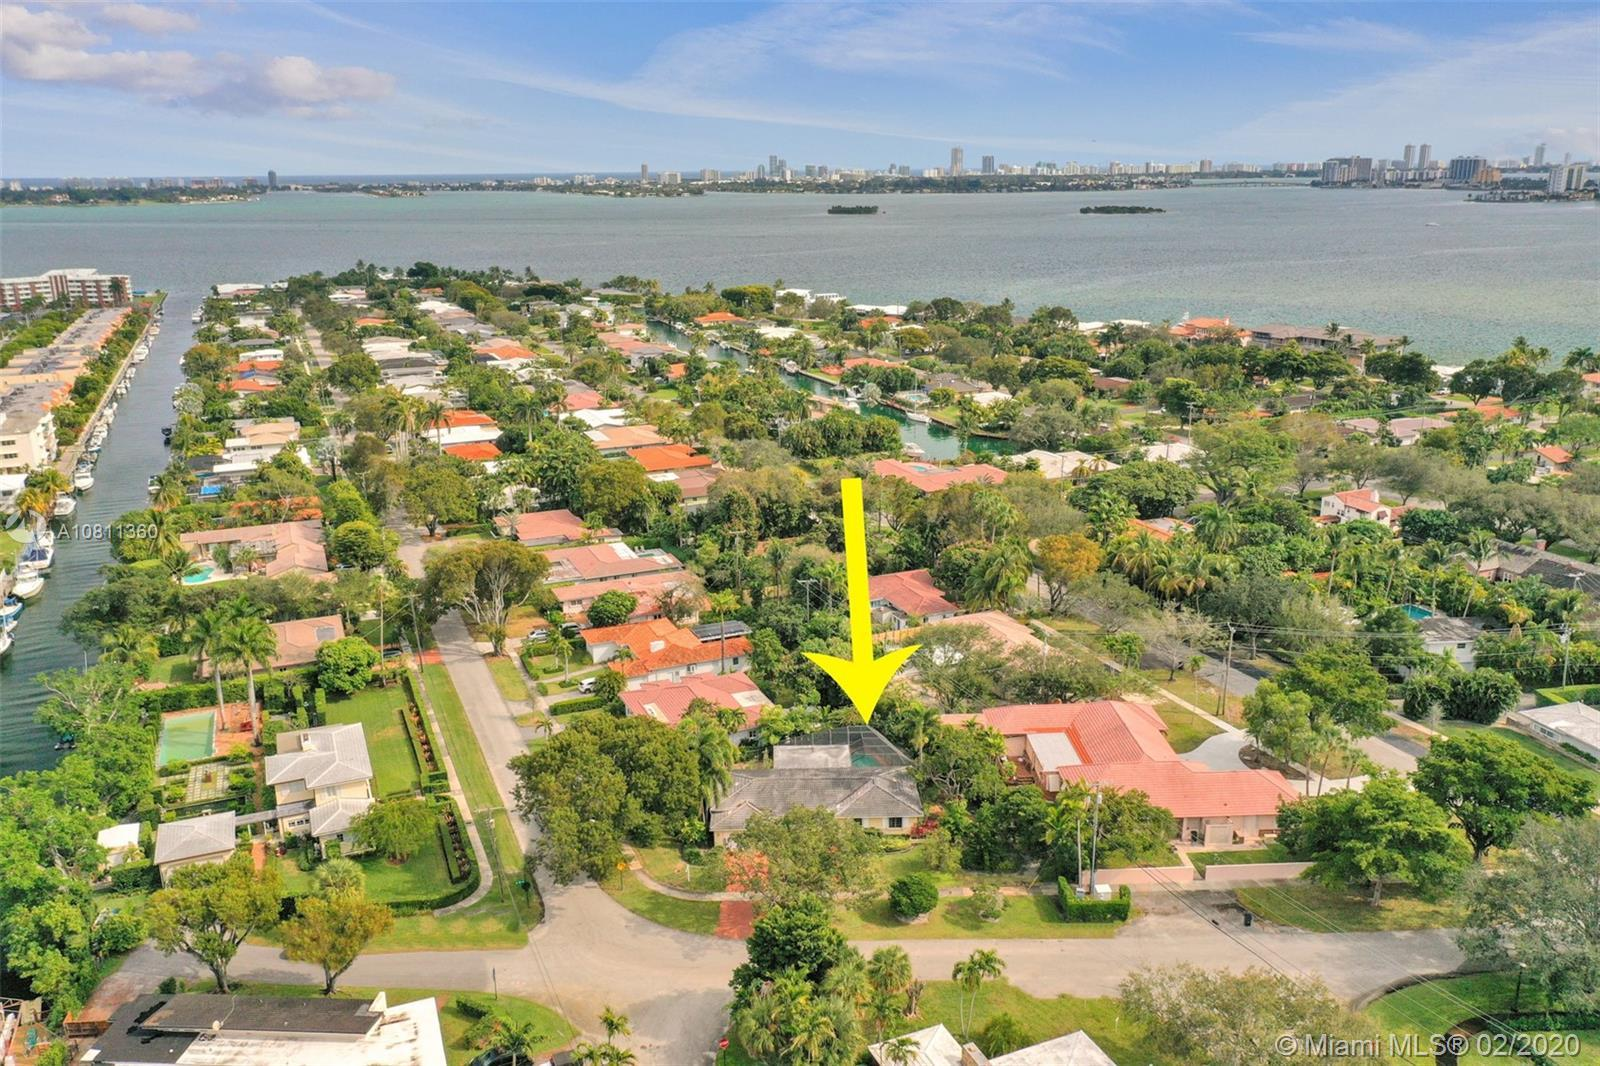 Amazing corner lot property in East Miami Shores (east of US1). This property features 3 bedrooms, 2